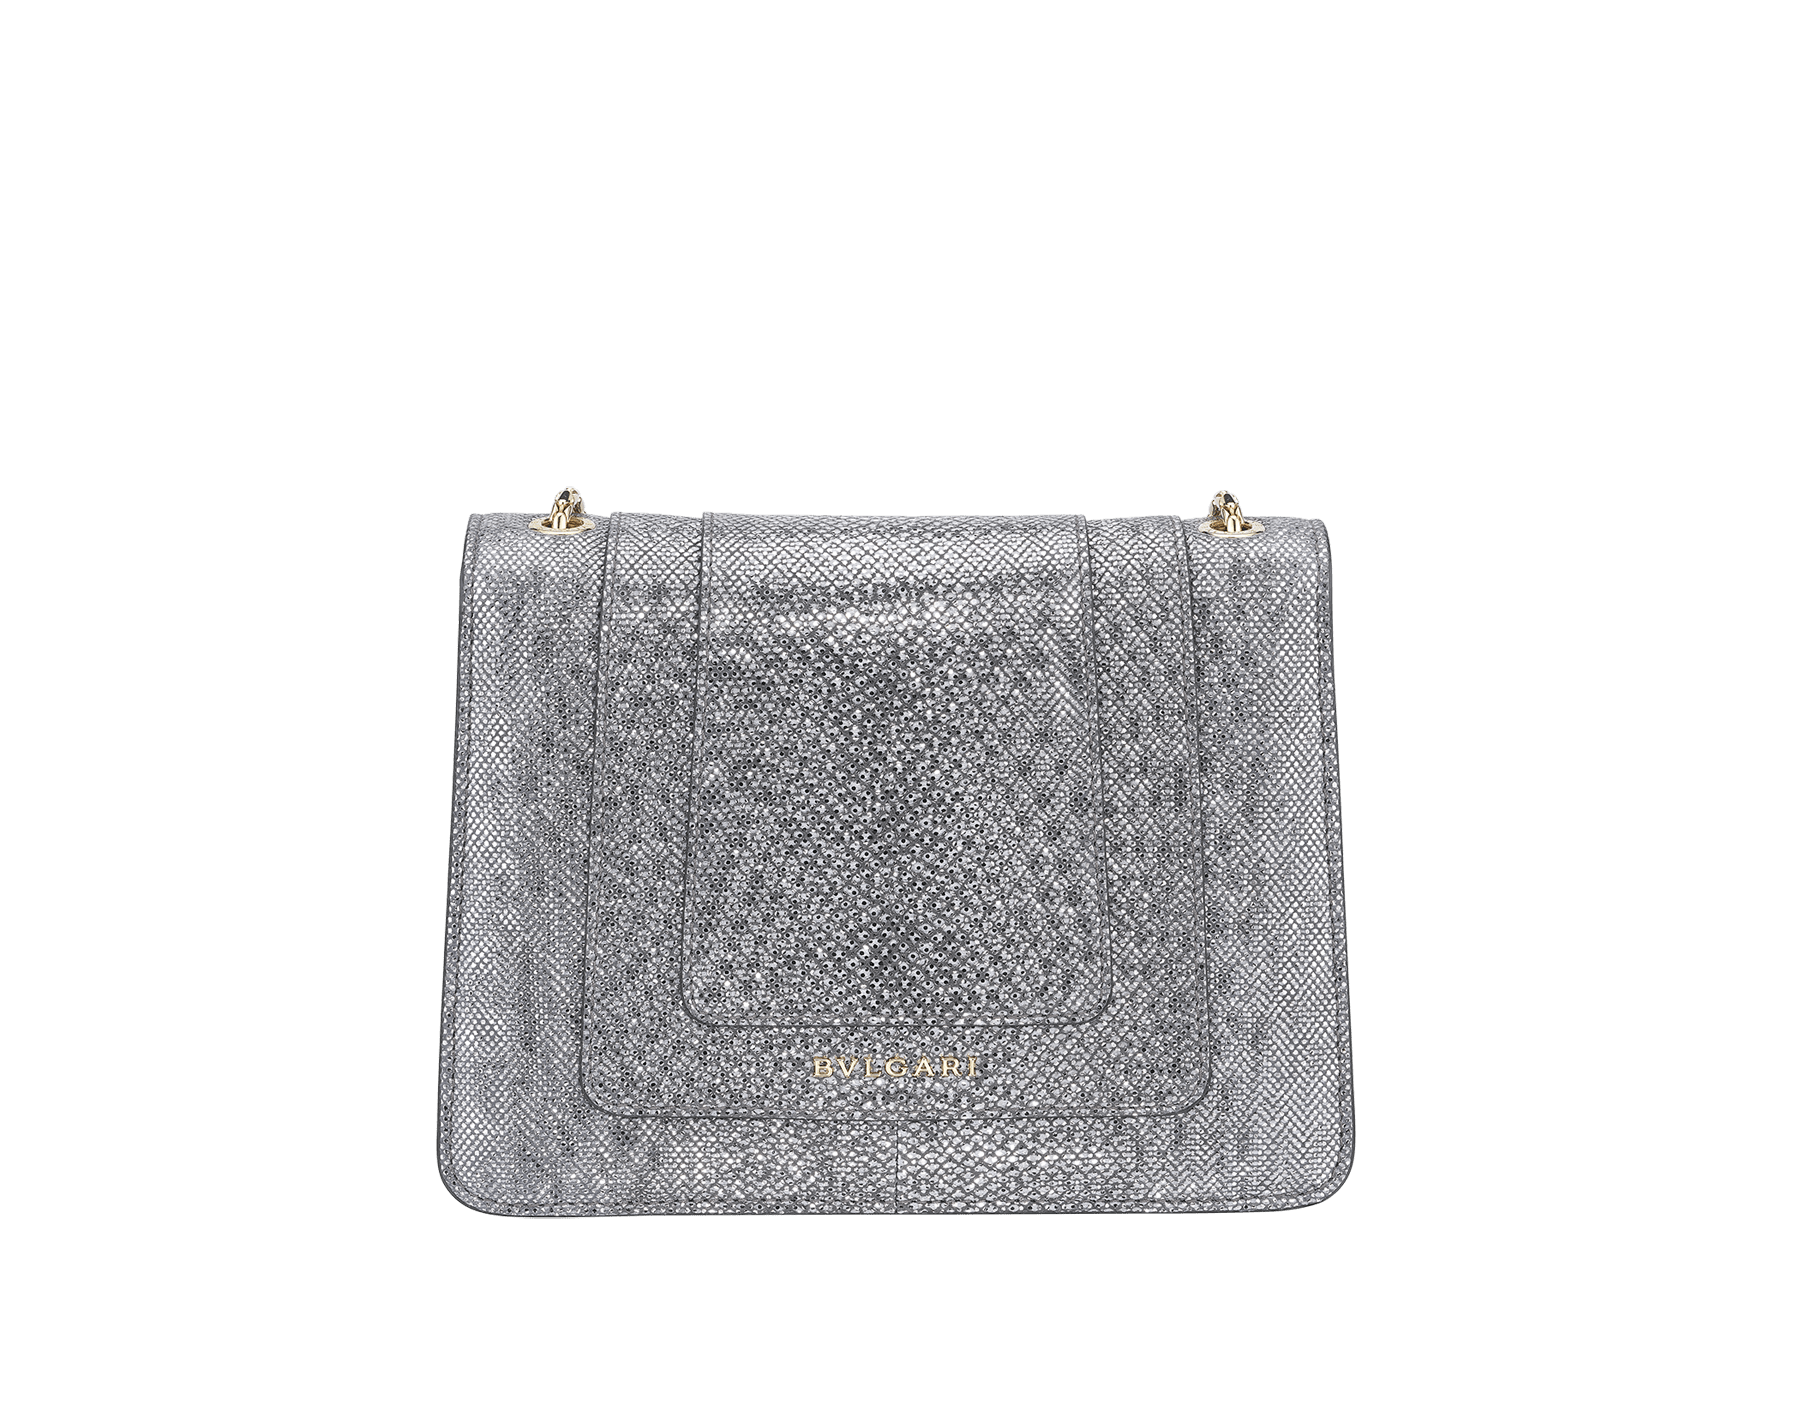 Serpenti Forever crossbody bag in charcoal diamond metallic karung skin. Snakehead closure in light gold plated brass decorated with glitter charcoal diamond and shiny black enamel, and black onyx eyes. 287939 image 3